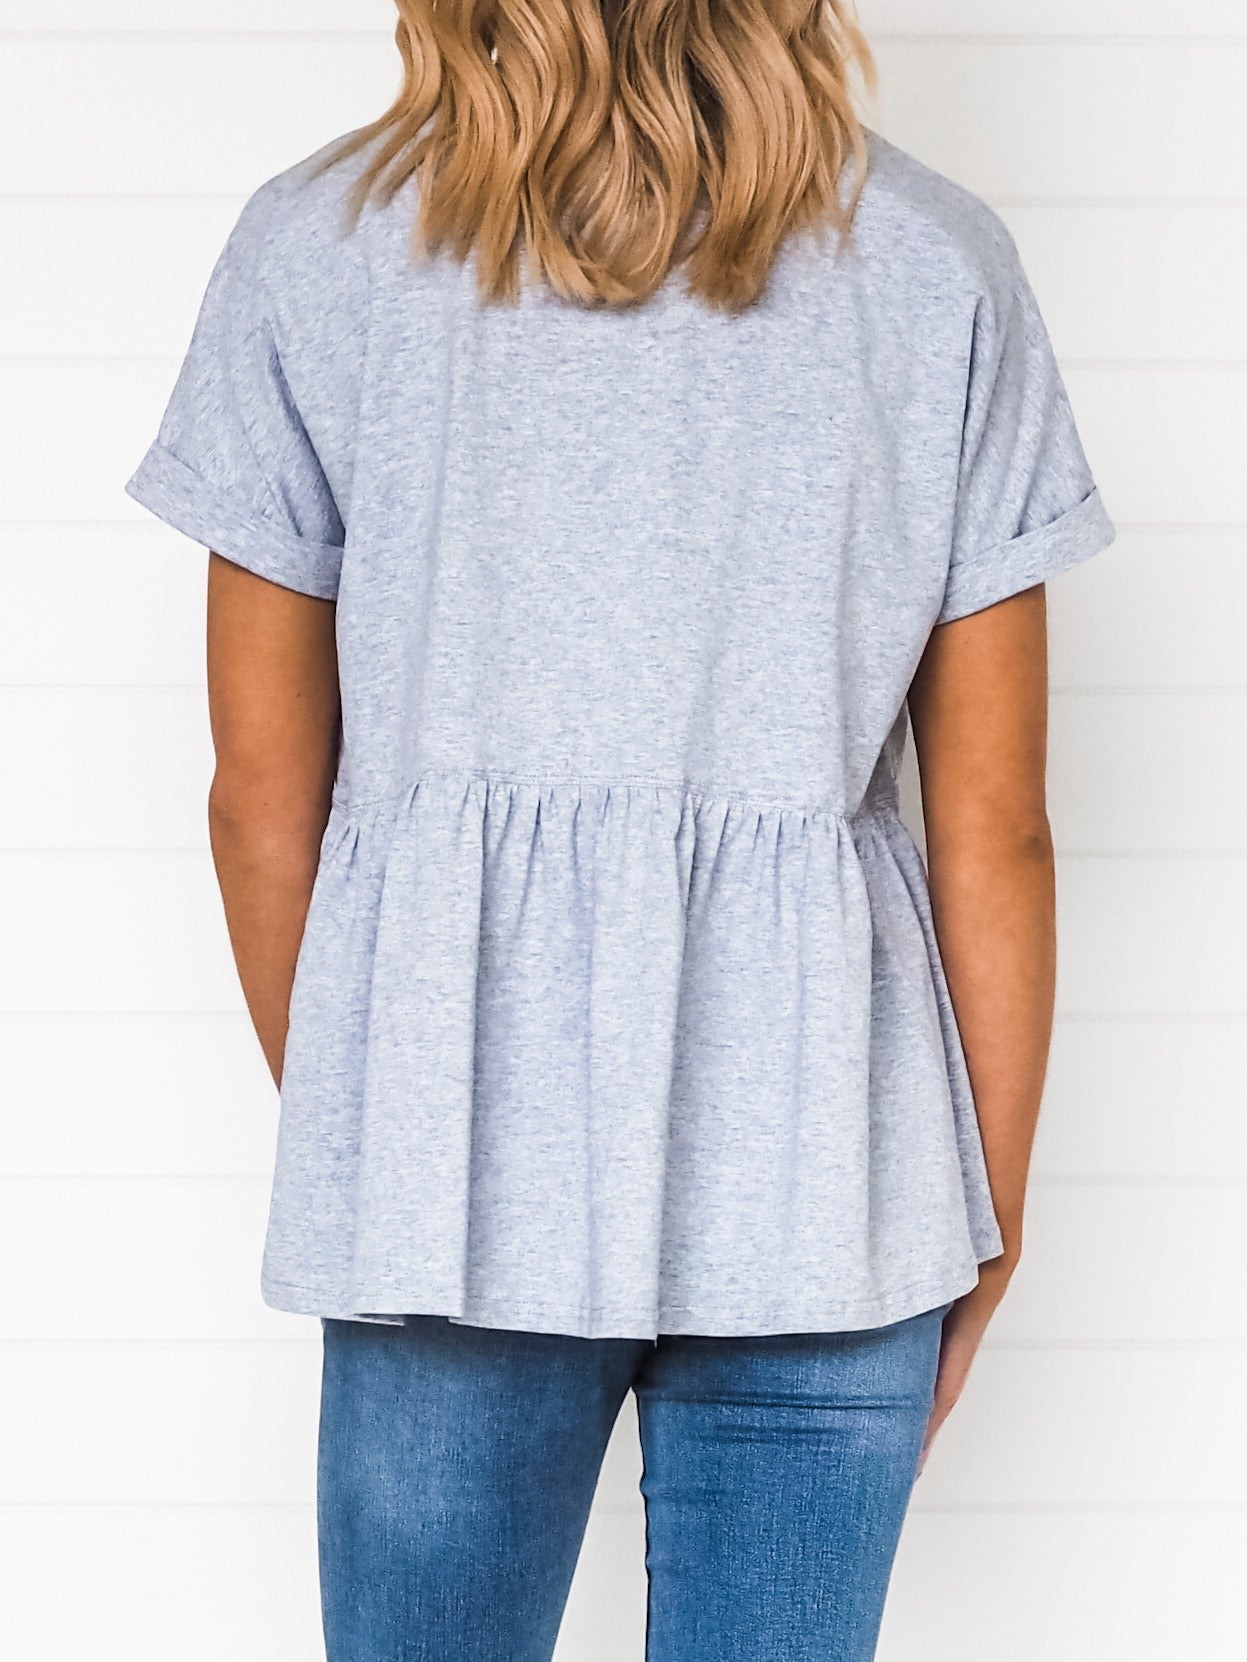 Pepper Frilled Tee - Grey